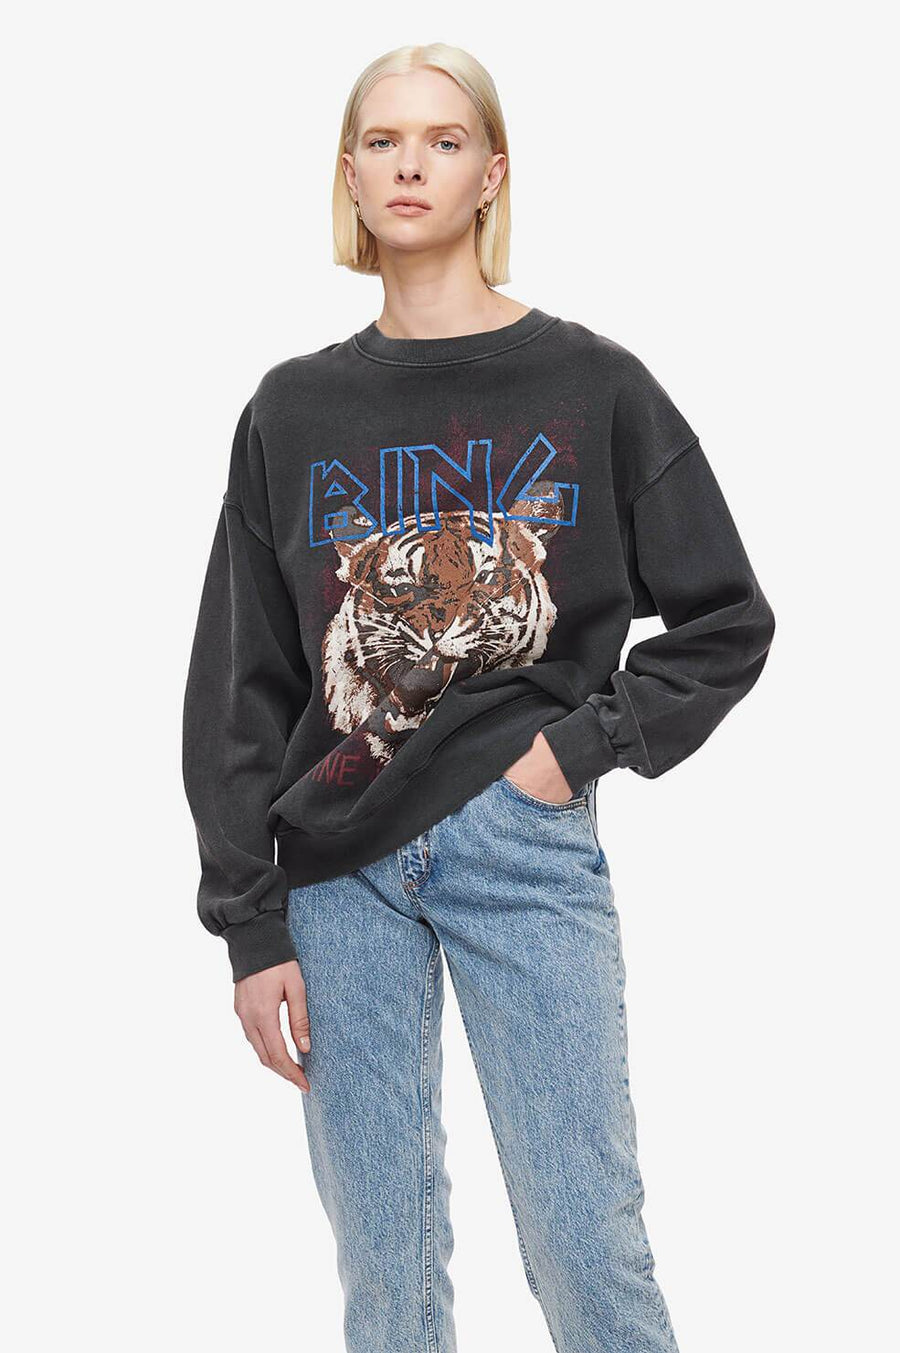 Anine Bing Tiger Sweatshirt - Black